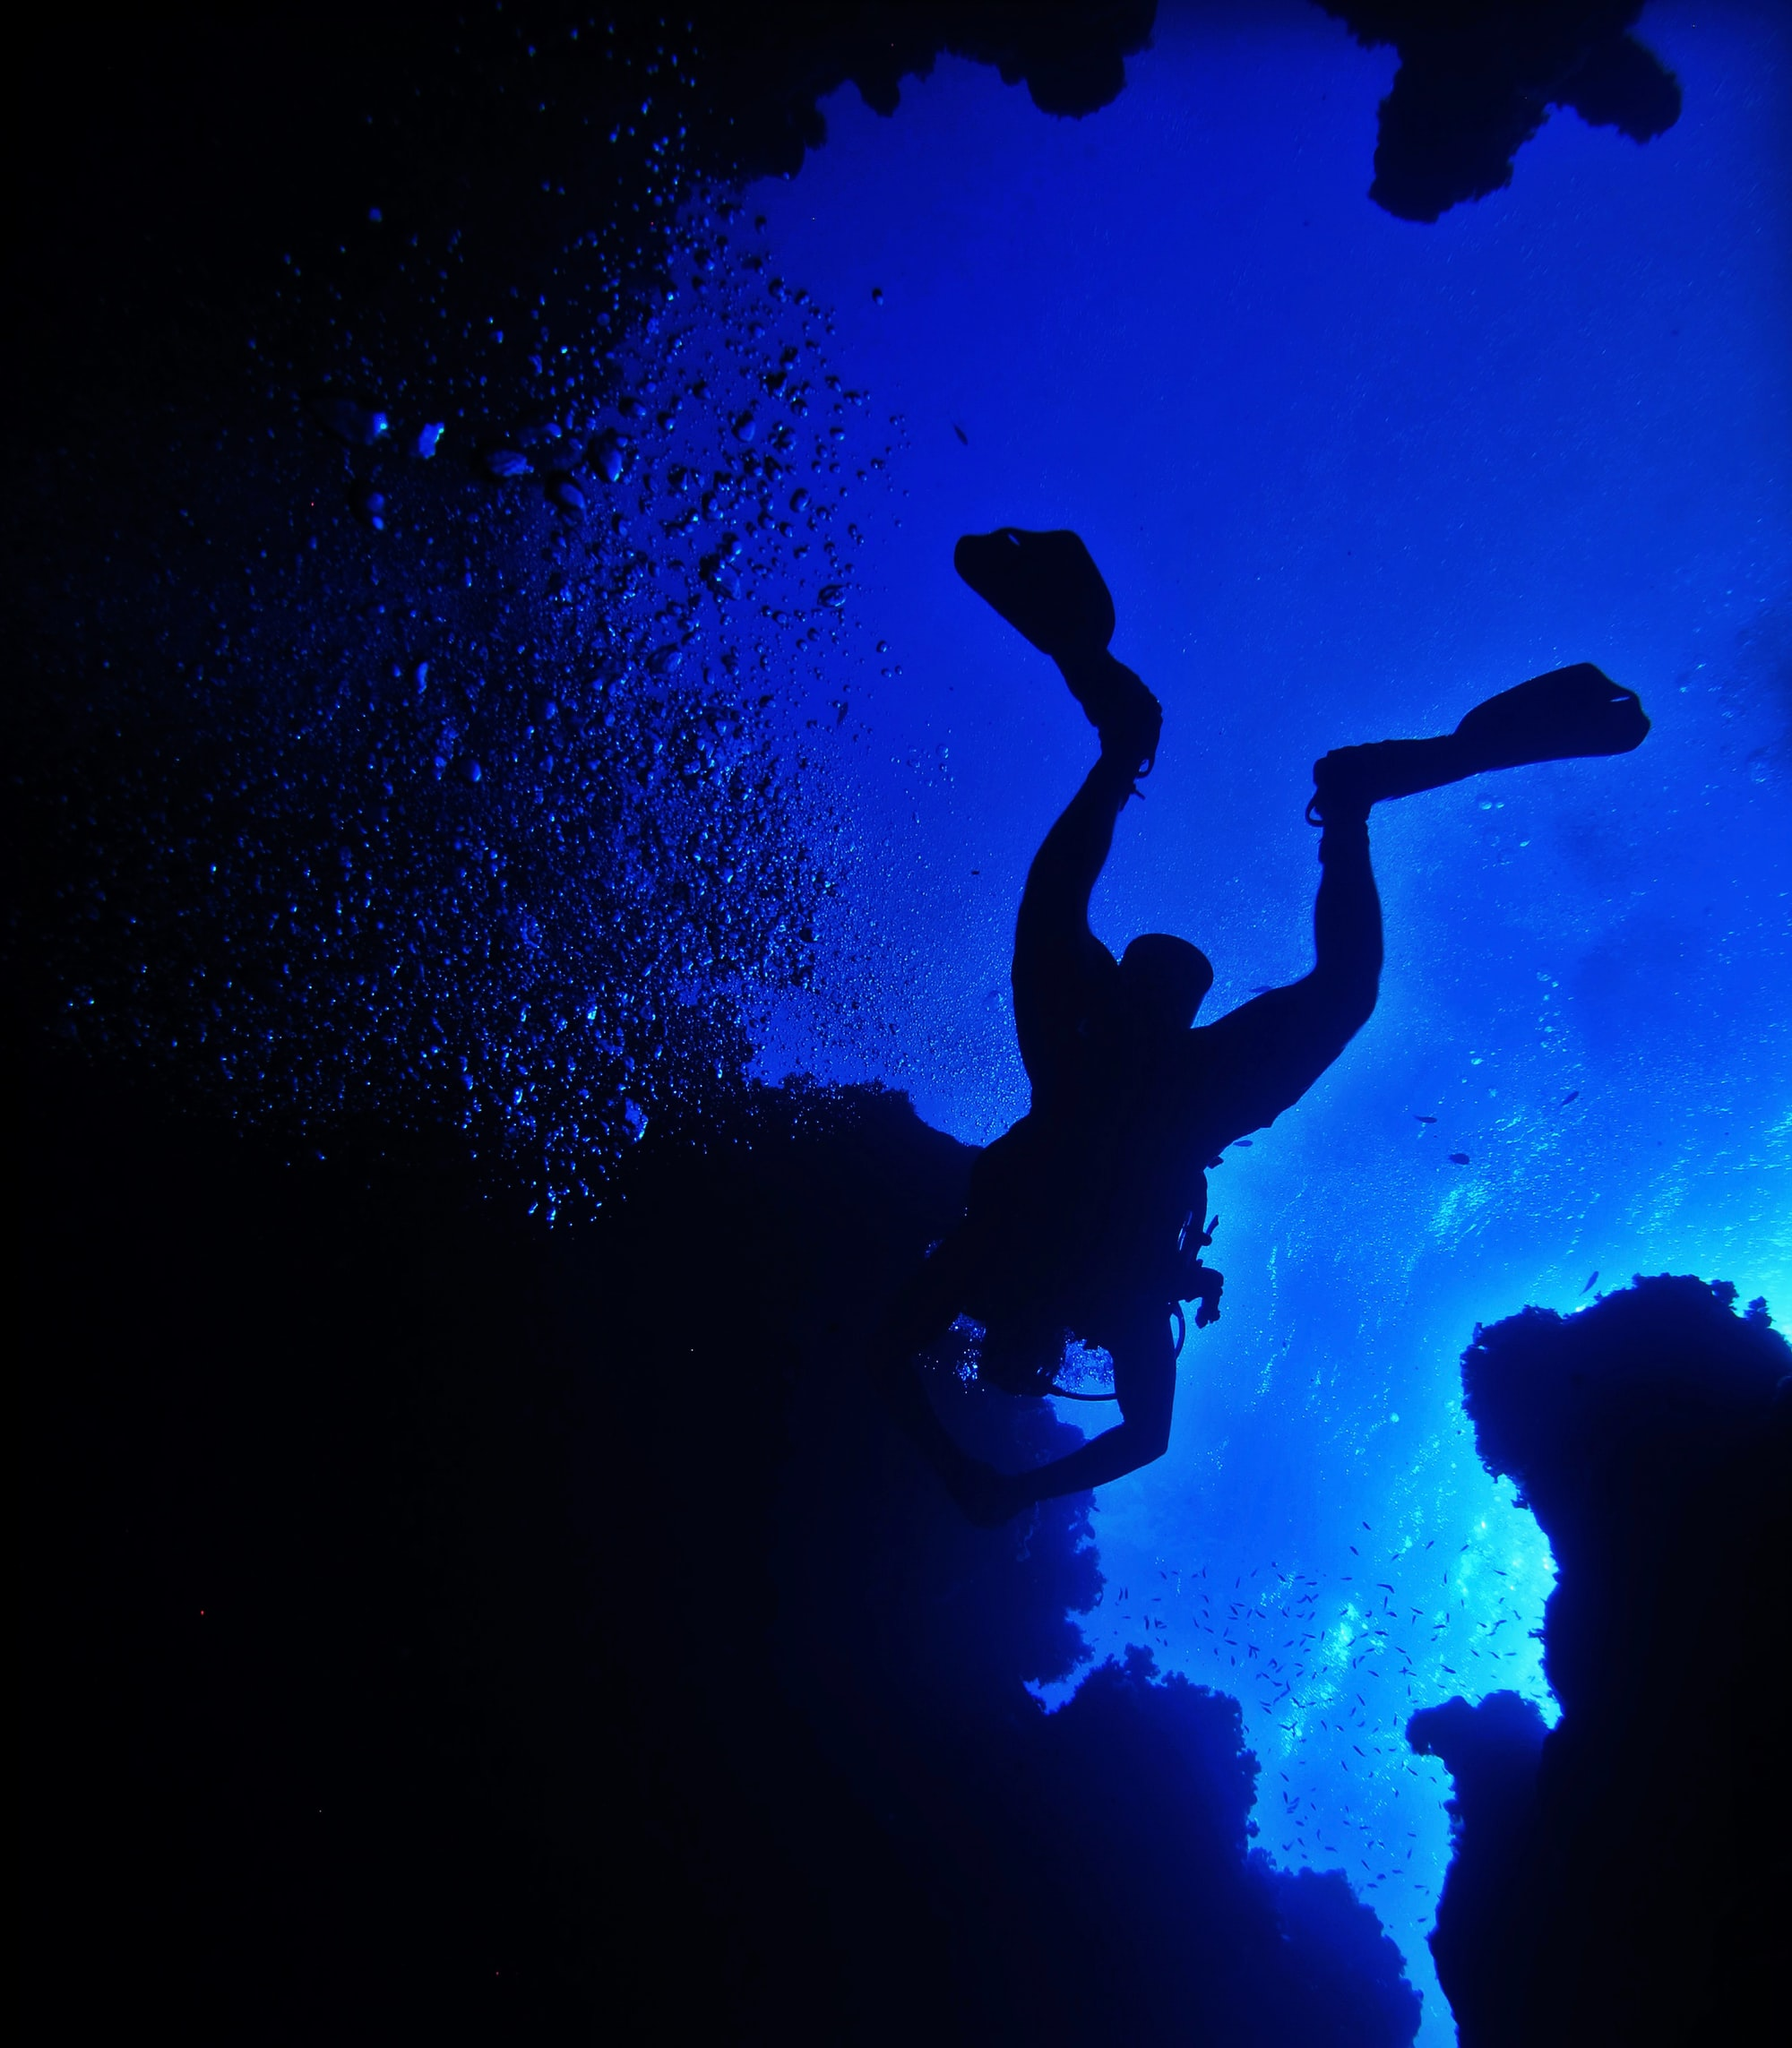 A fellow diver arising from the Canyon cave at Dahab, Egypt. For more exclusive photos, check my instagram page✌️  @nariman.mesharrafa